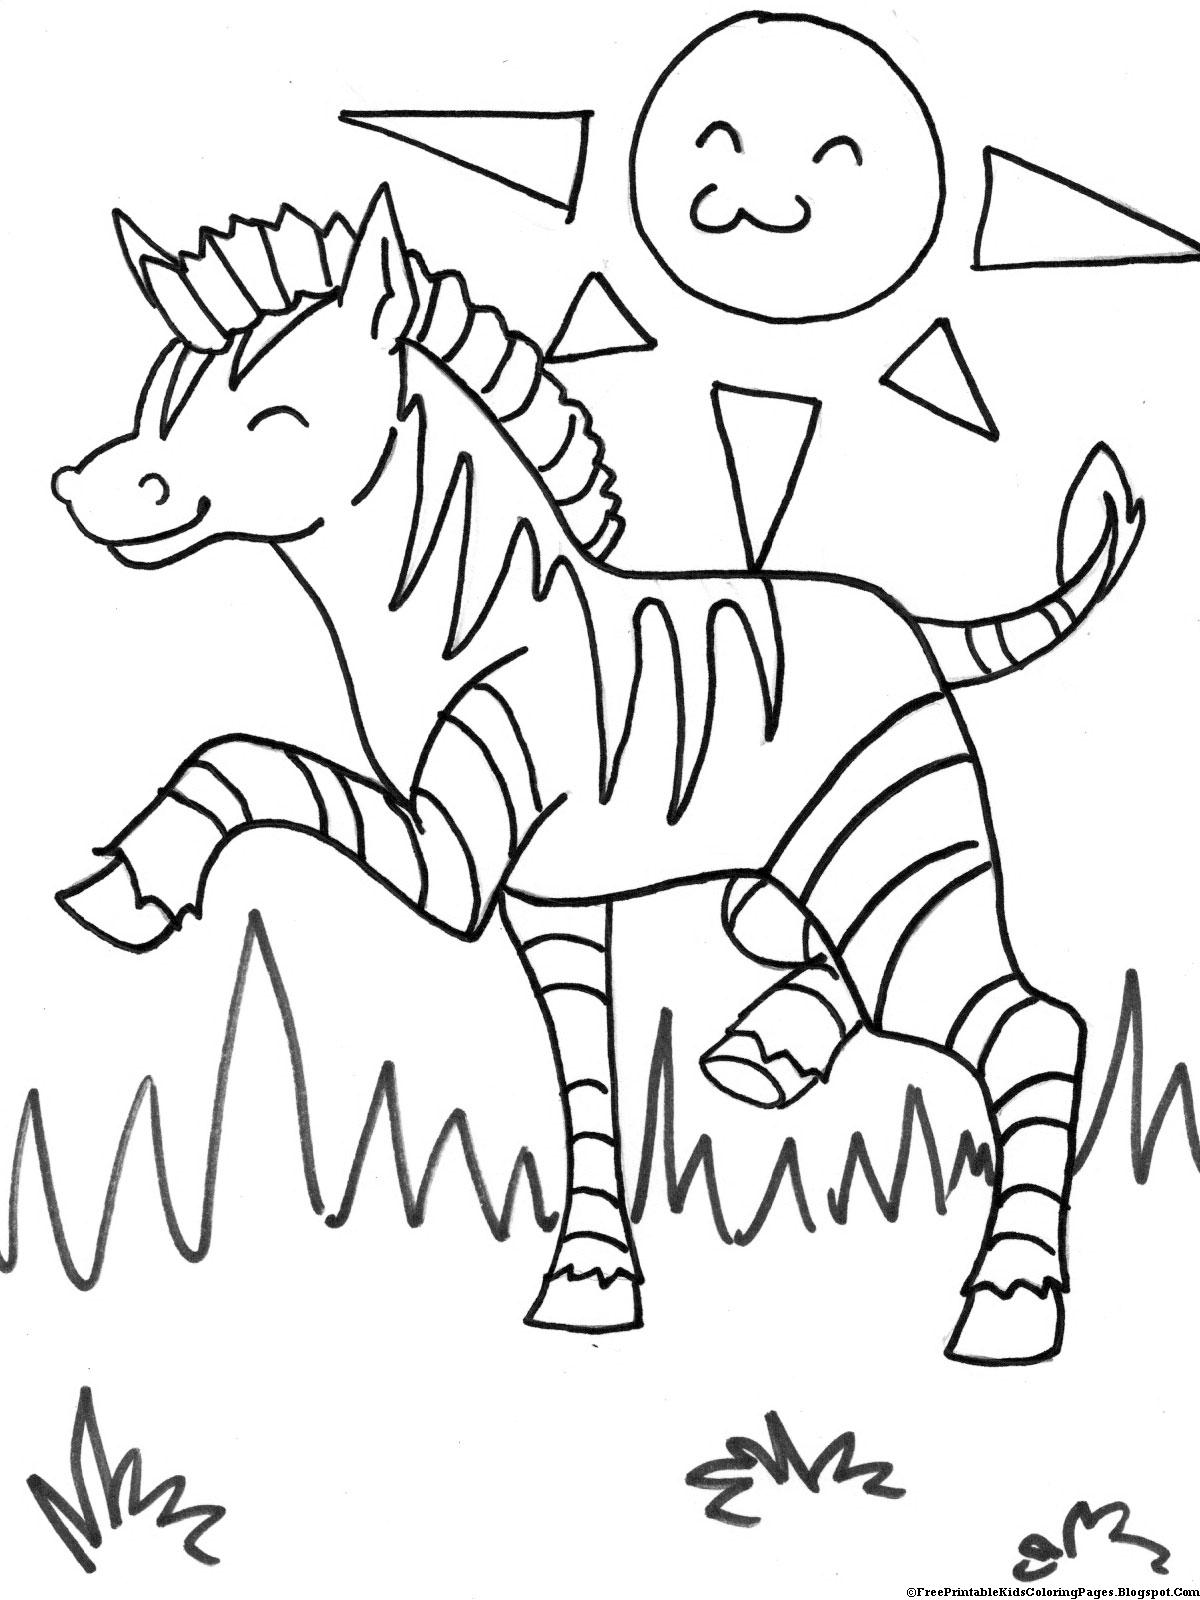 Coloring worksheets for toddlers